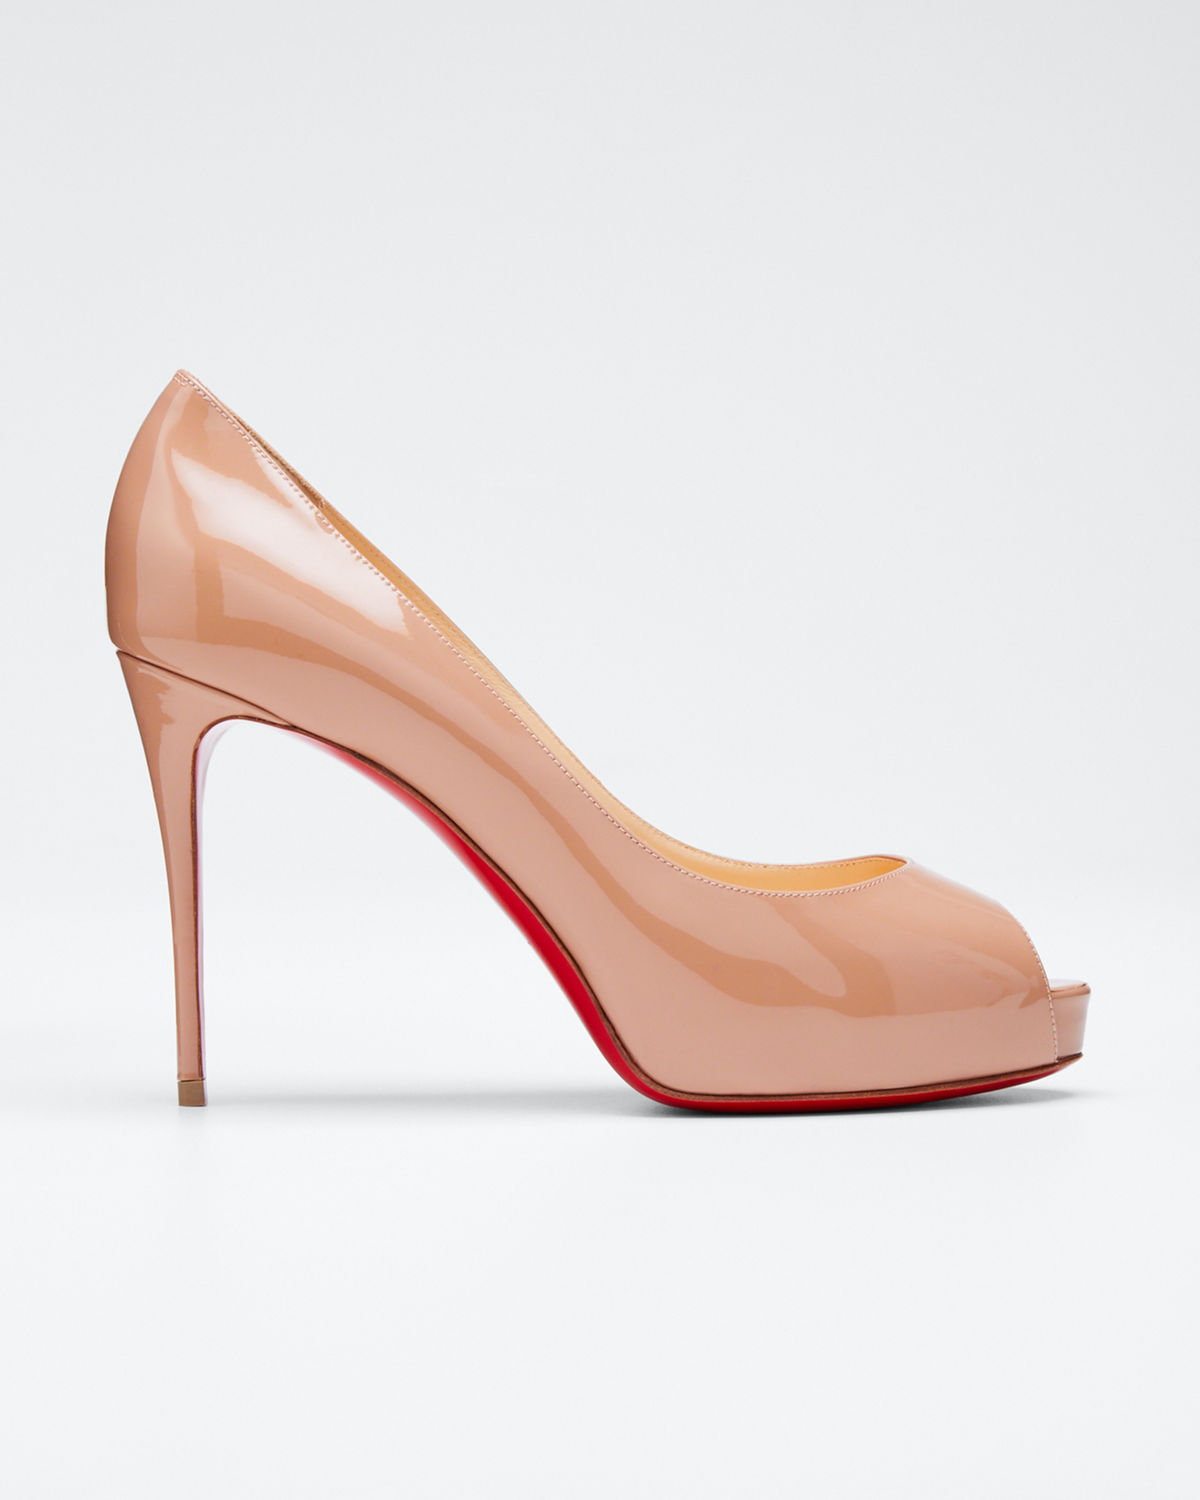 new concept df2bd bf327 New Very Prive Peep-Toe Red Sole Pumps